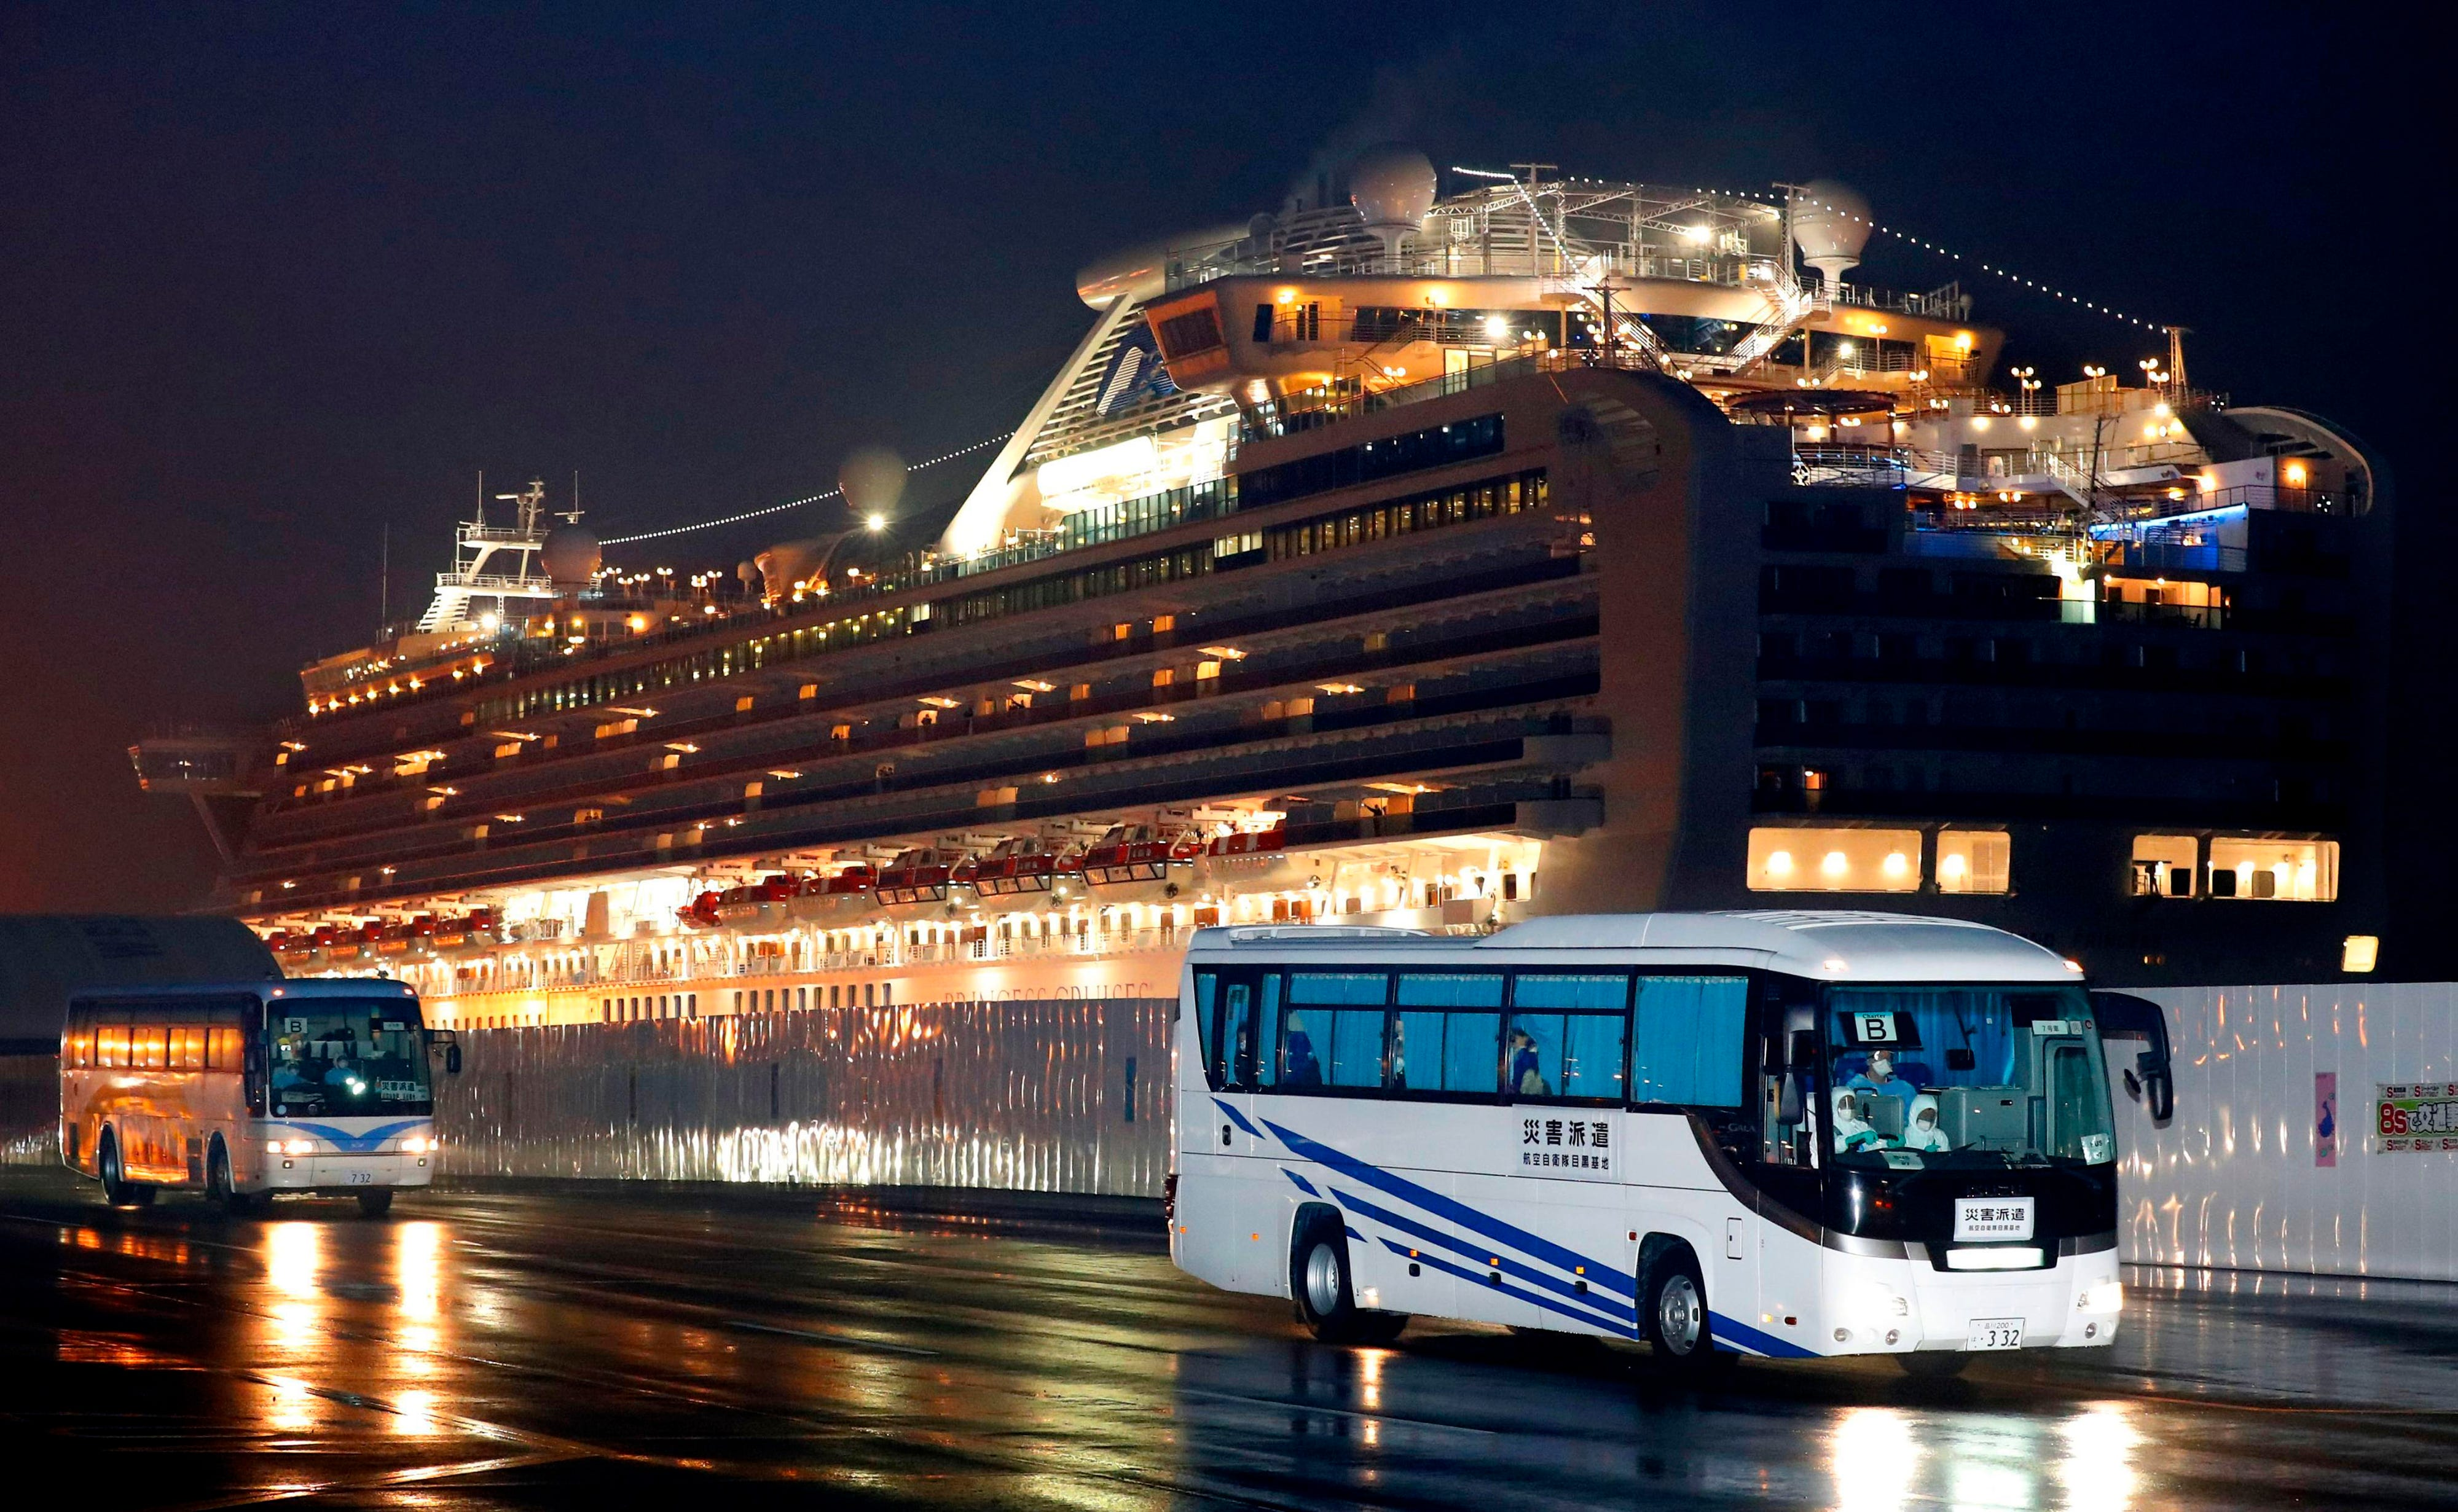 Coronavirus cases on Diamond Princess soar past 500, site of most infections outside China